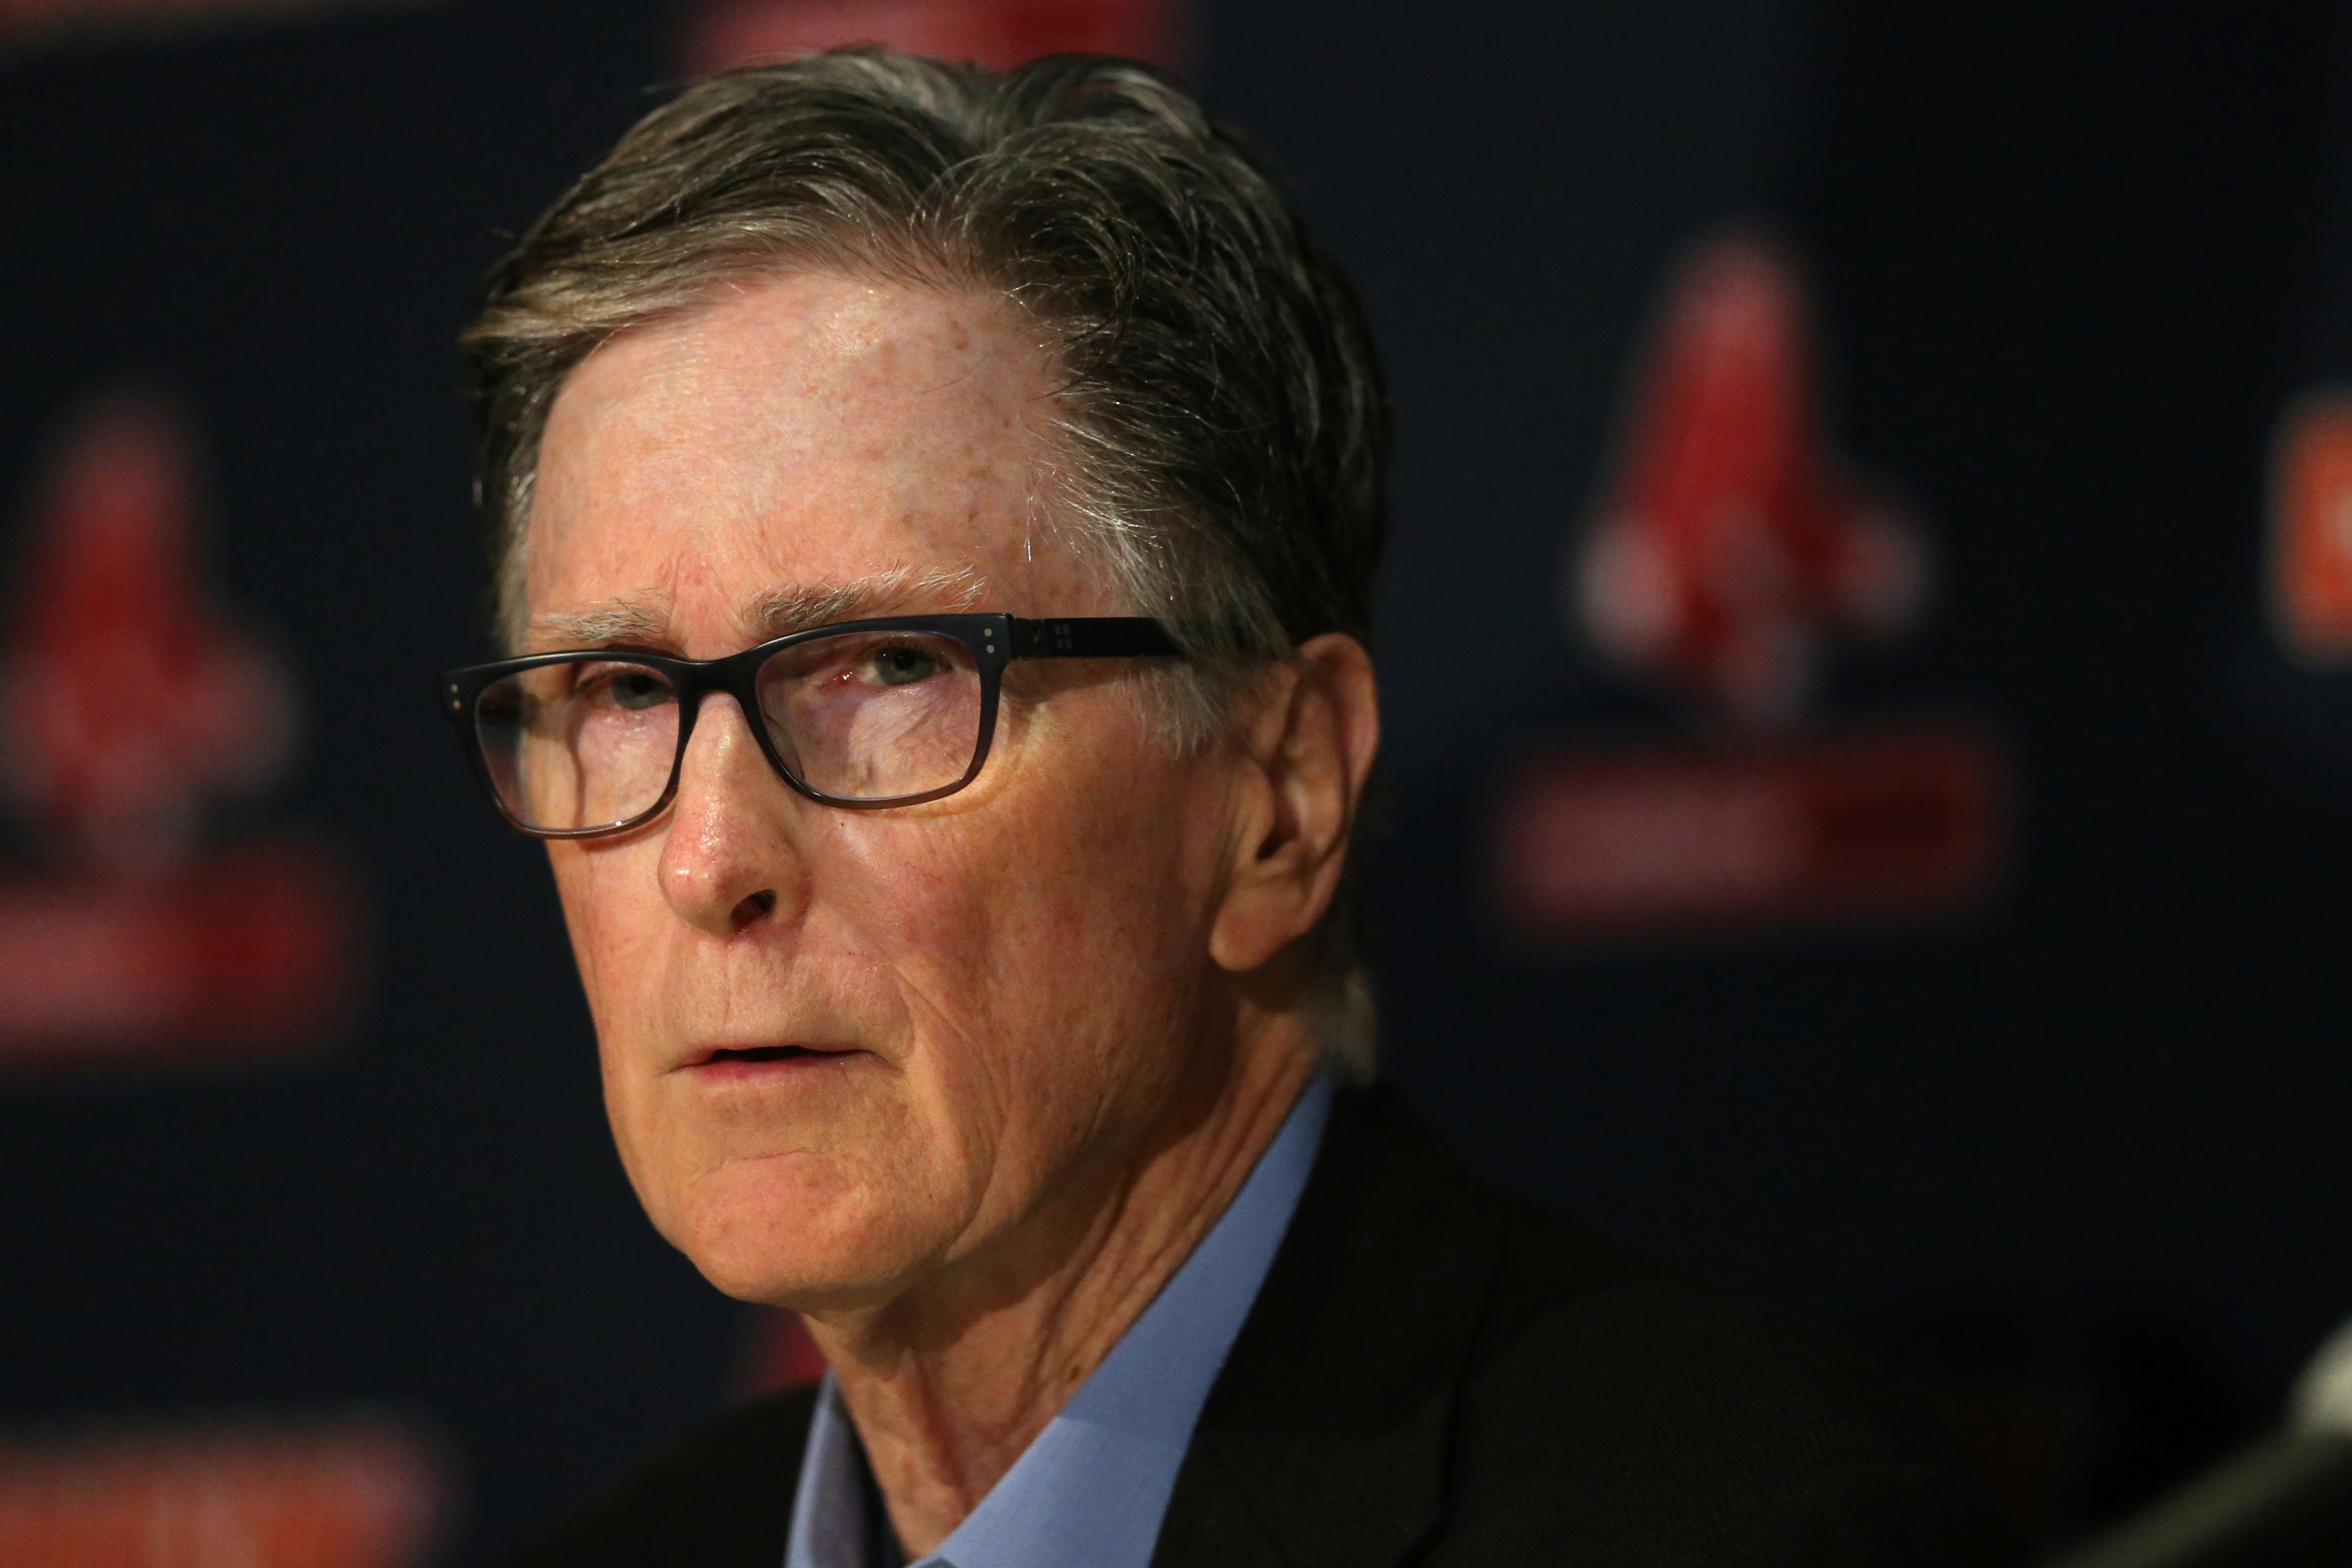 boston red sox punishment for cheating appears imminent